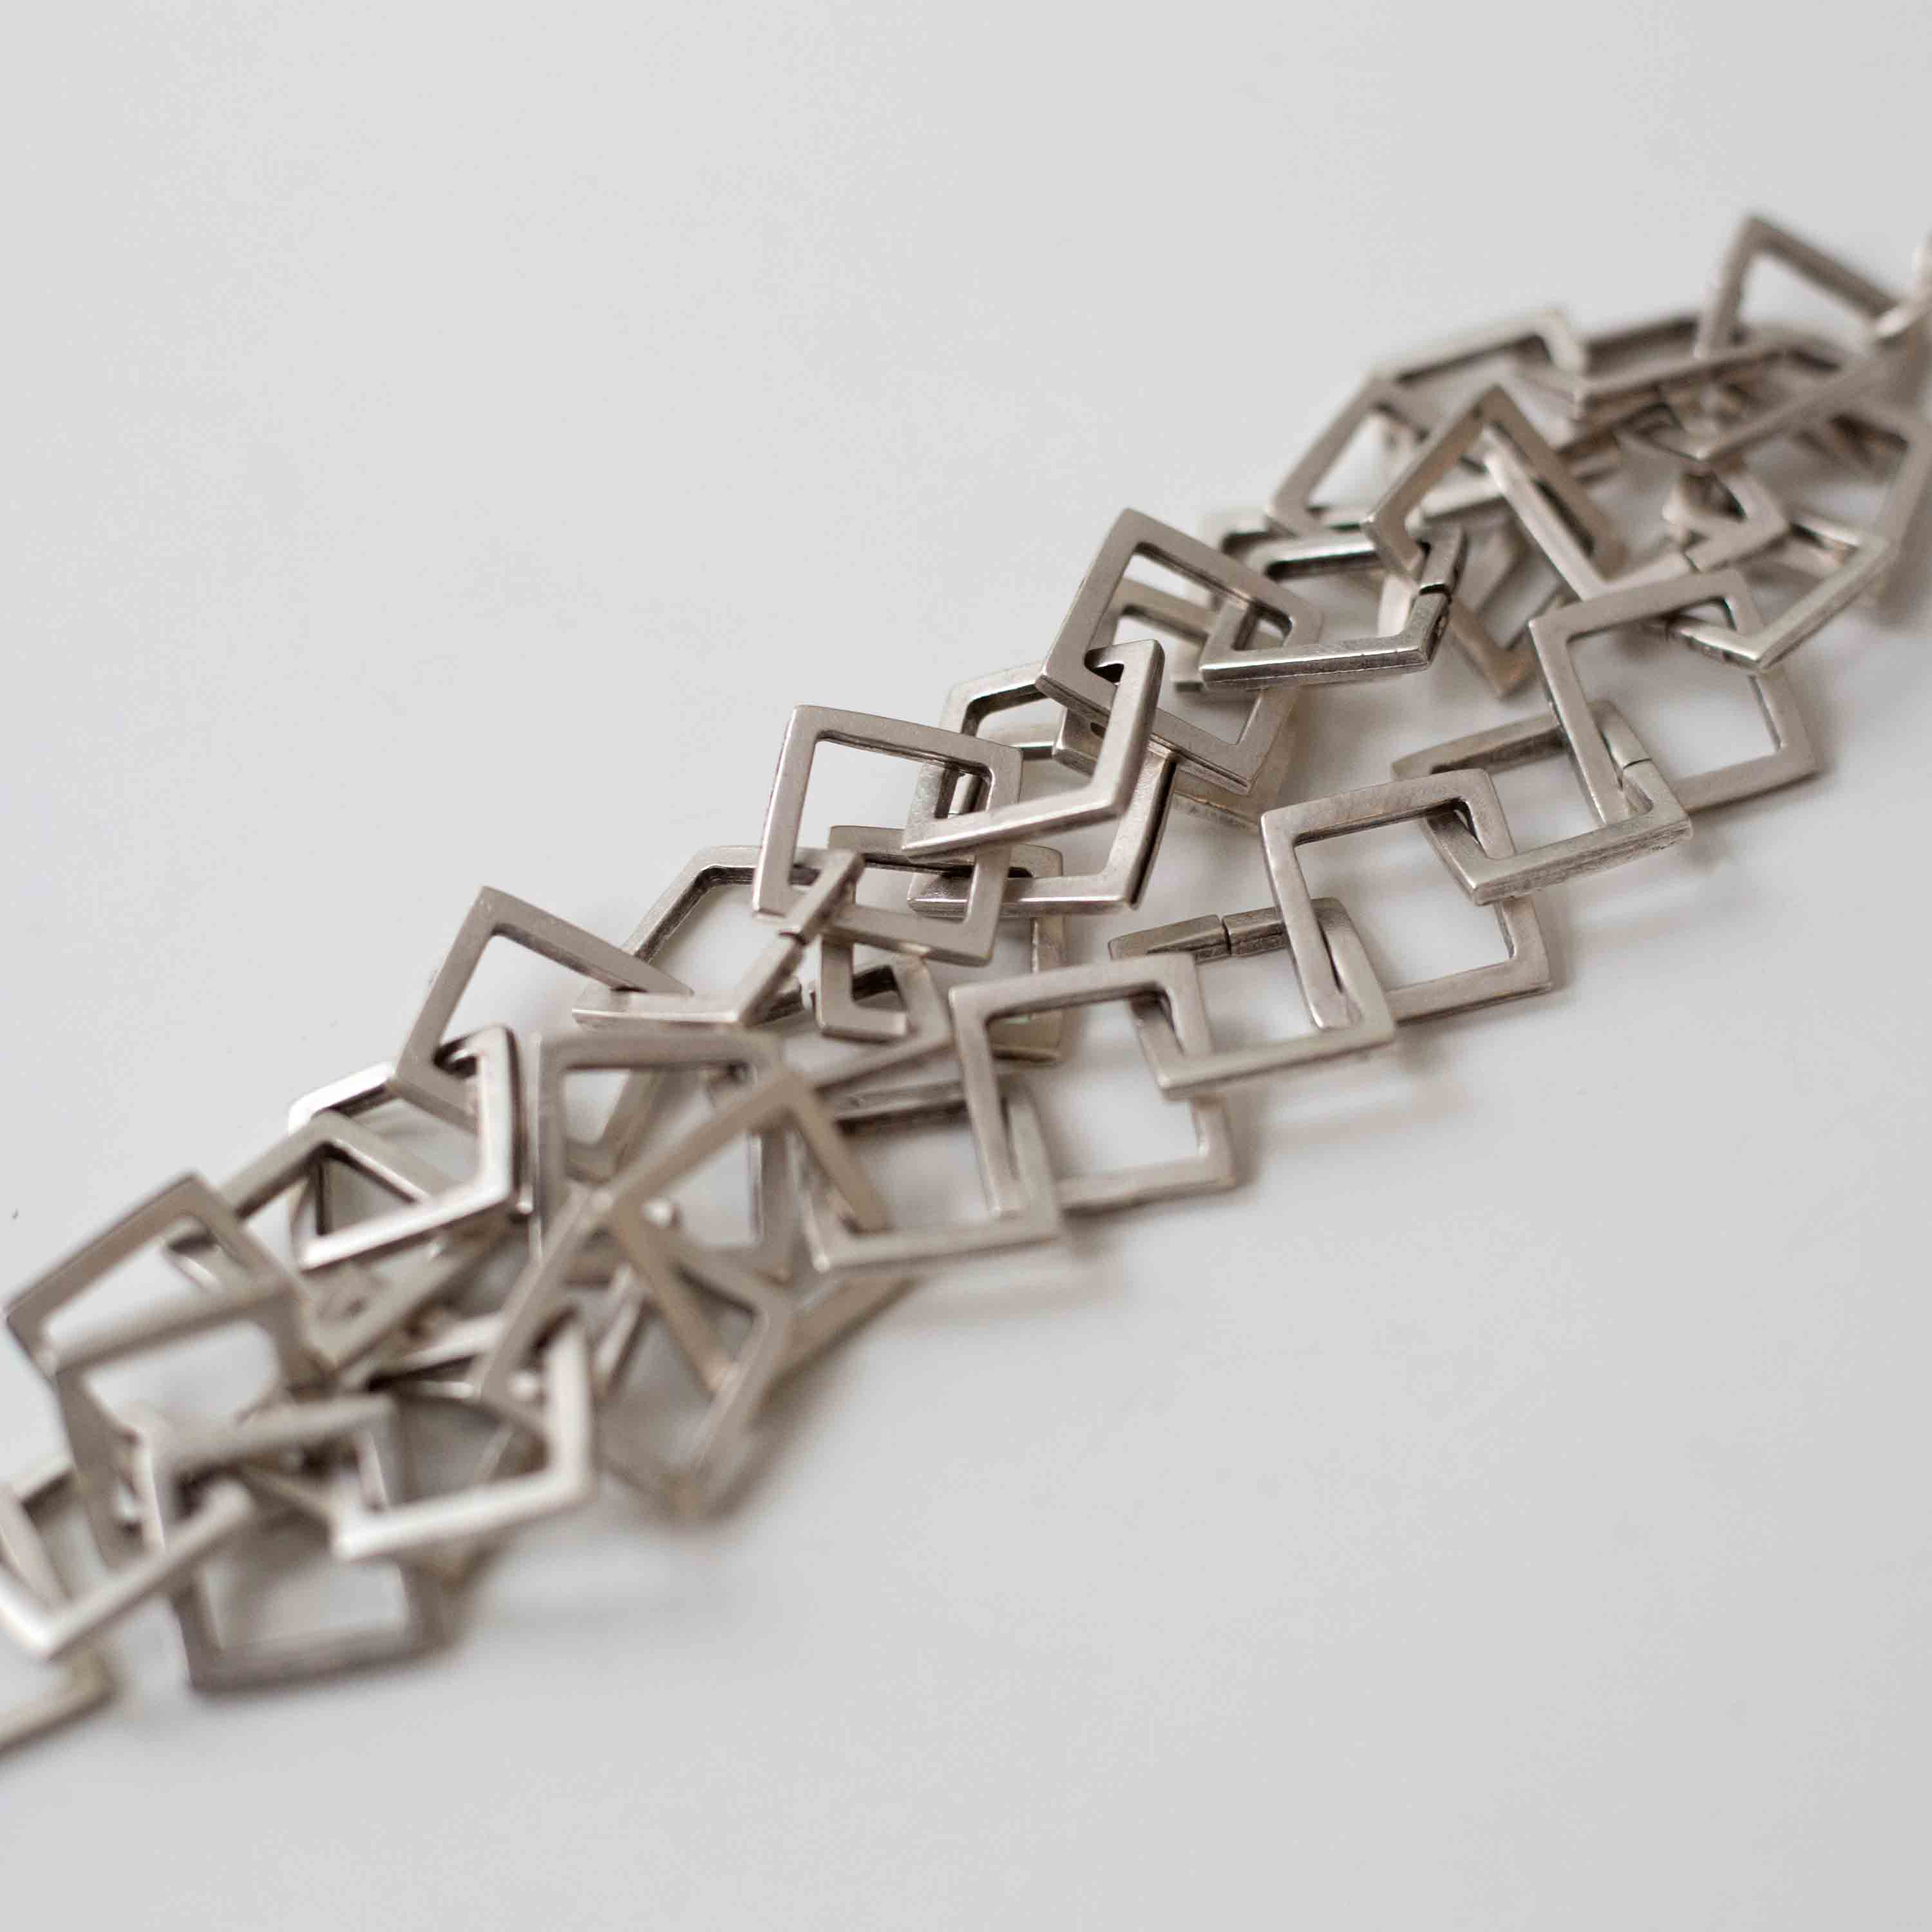 Pewter/silver handmade artisan layered square loop bracelet Antique silver plated Nickel free Hypoallergenic S hook clasp